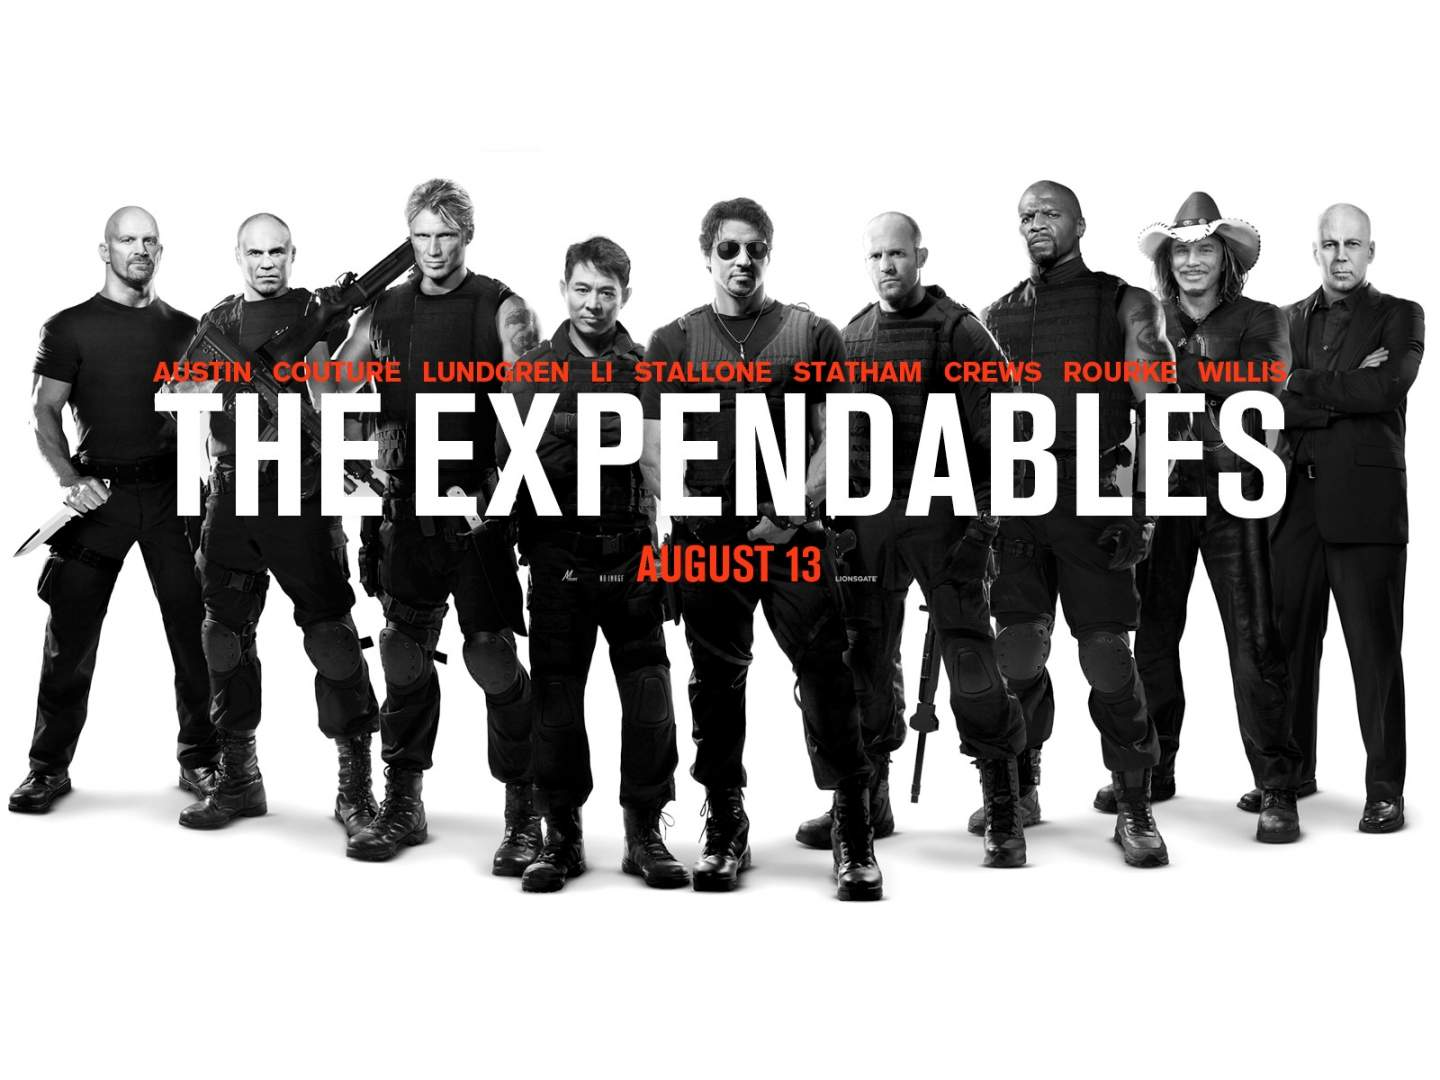 http://4.bp.blogspot.com/-o6_t8unr0sY/UDREMjAGr3I/AAAAAAAAAP4/f_x8LD0fn6E/s1600/The+Expendables+Cast+Crew+-+The+expendables+2+Wallpapers.jpg